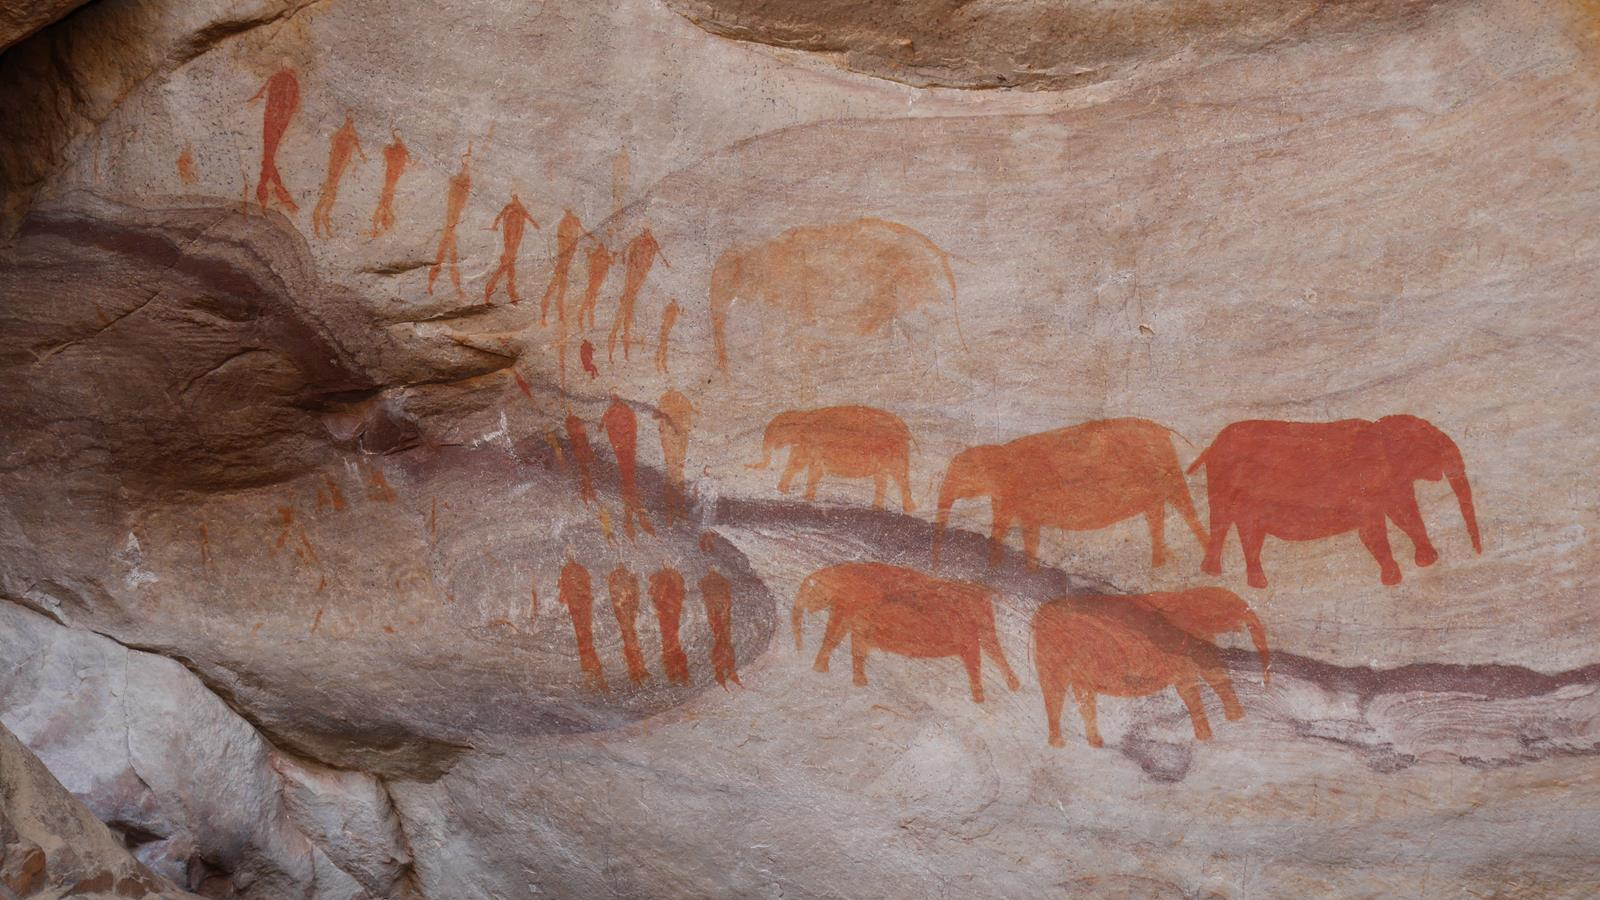 Some of the rock art of the Cederberg.